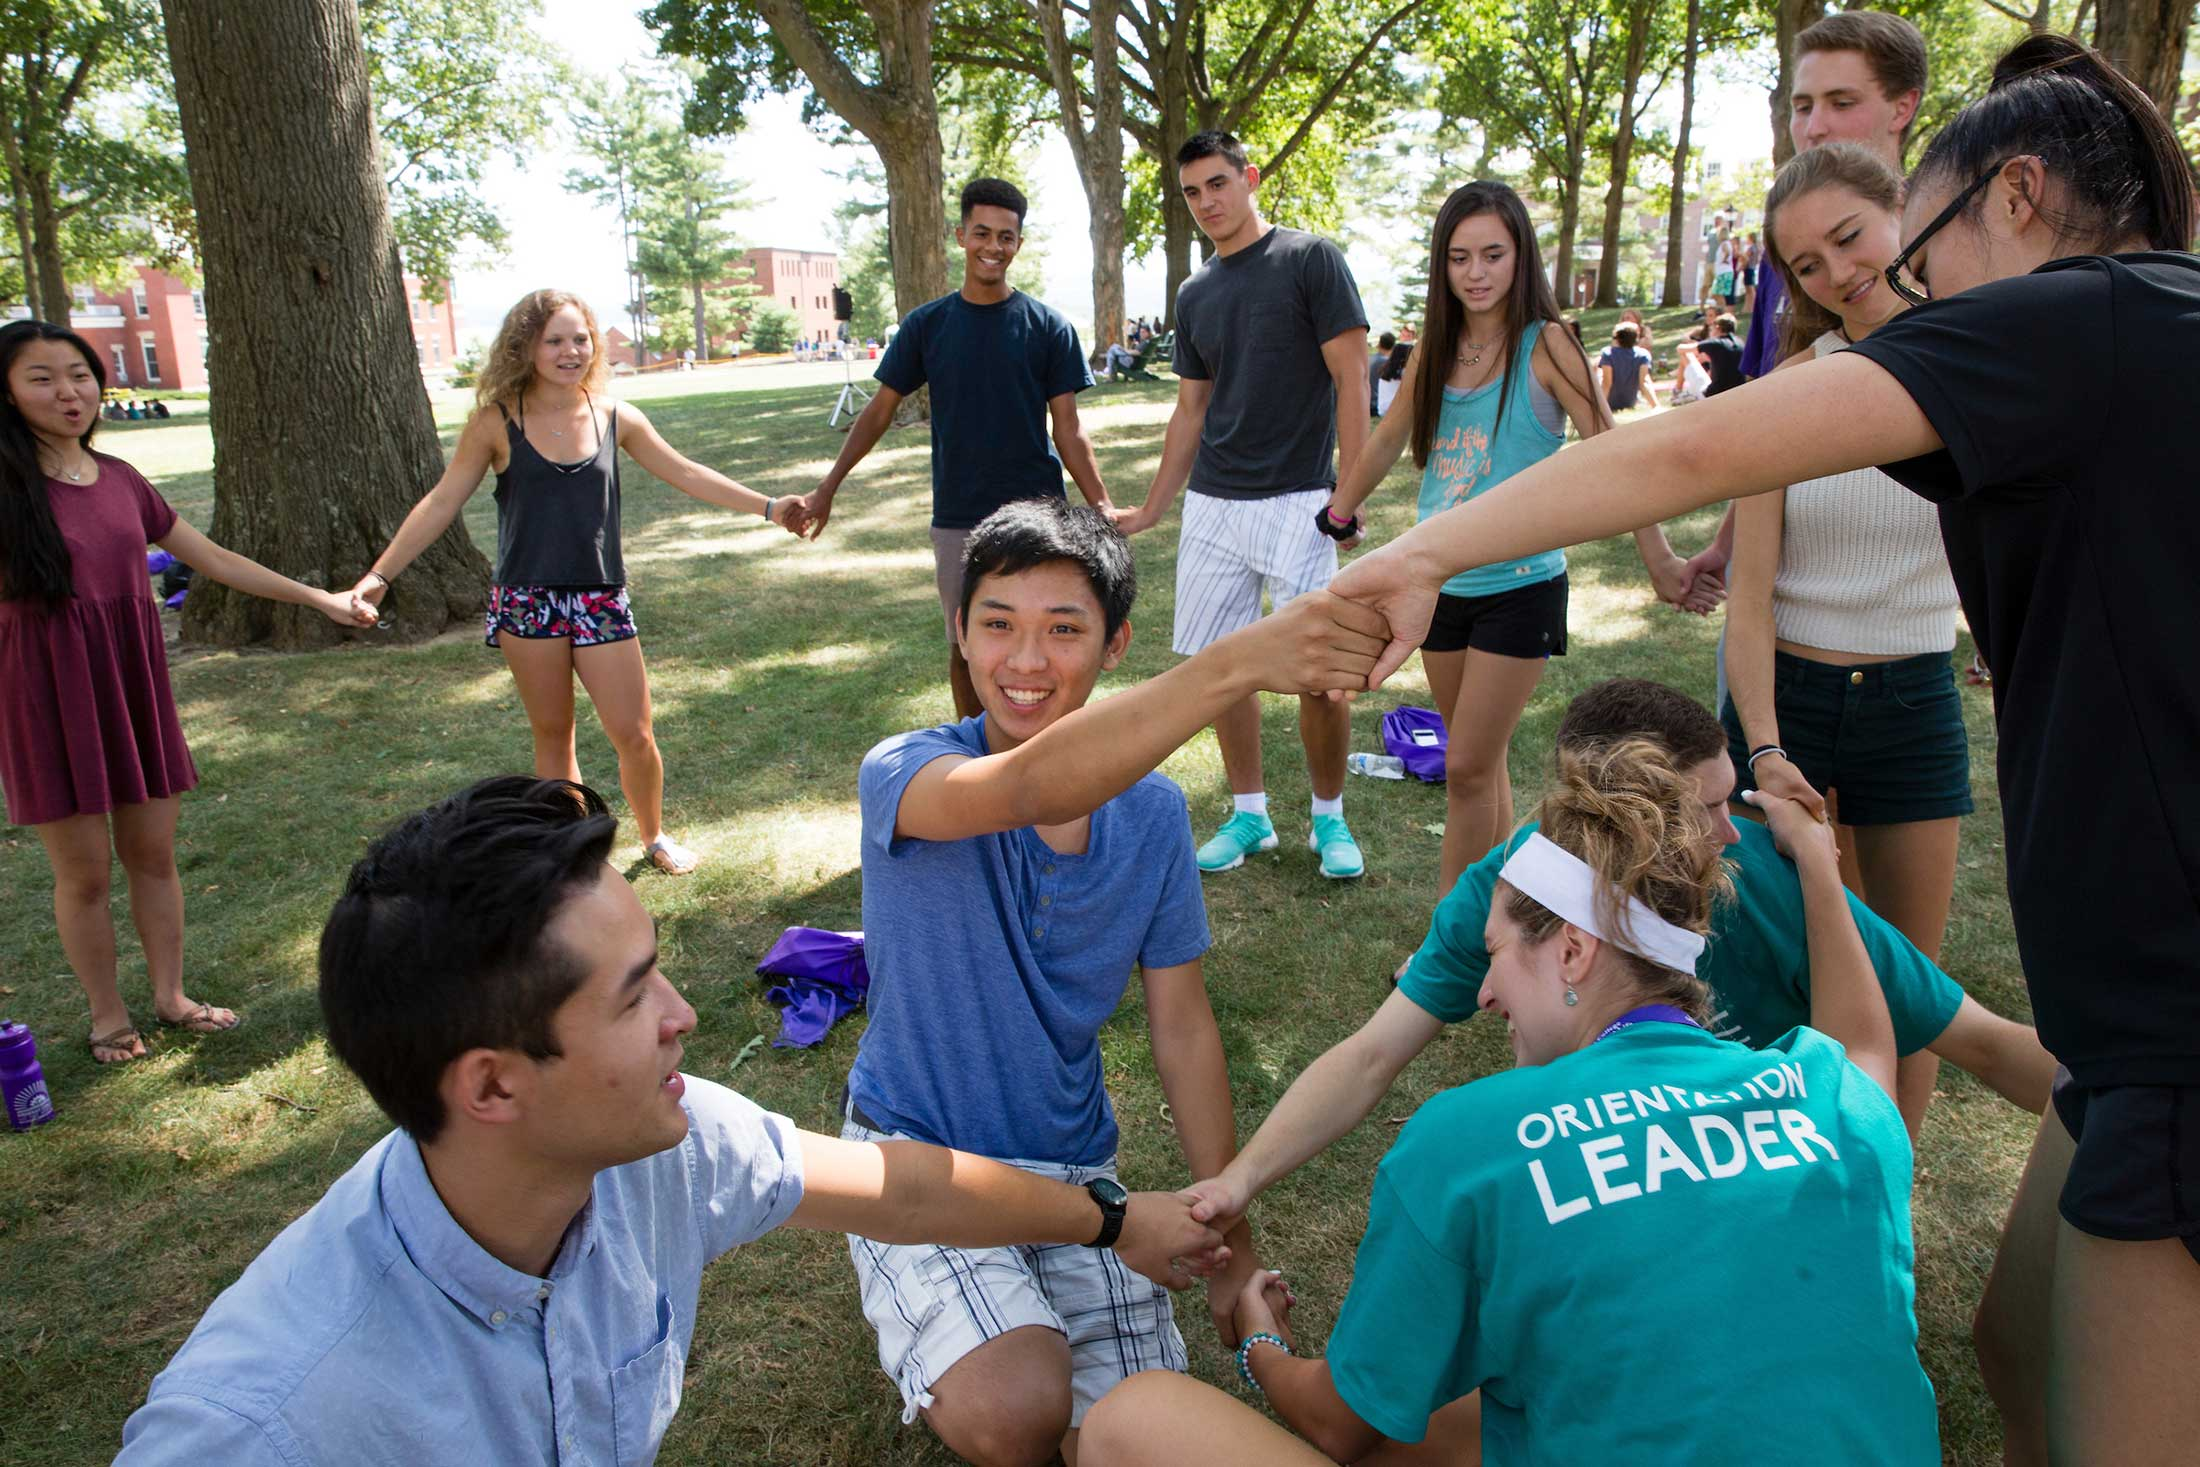 Students participating in an ice-breaker activity during orientation